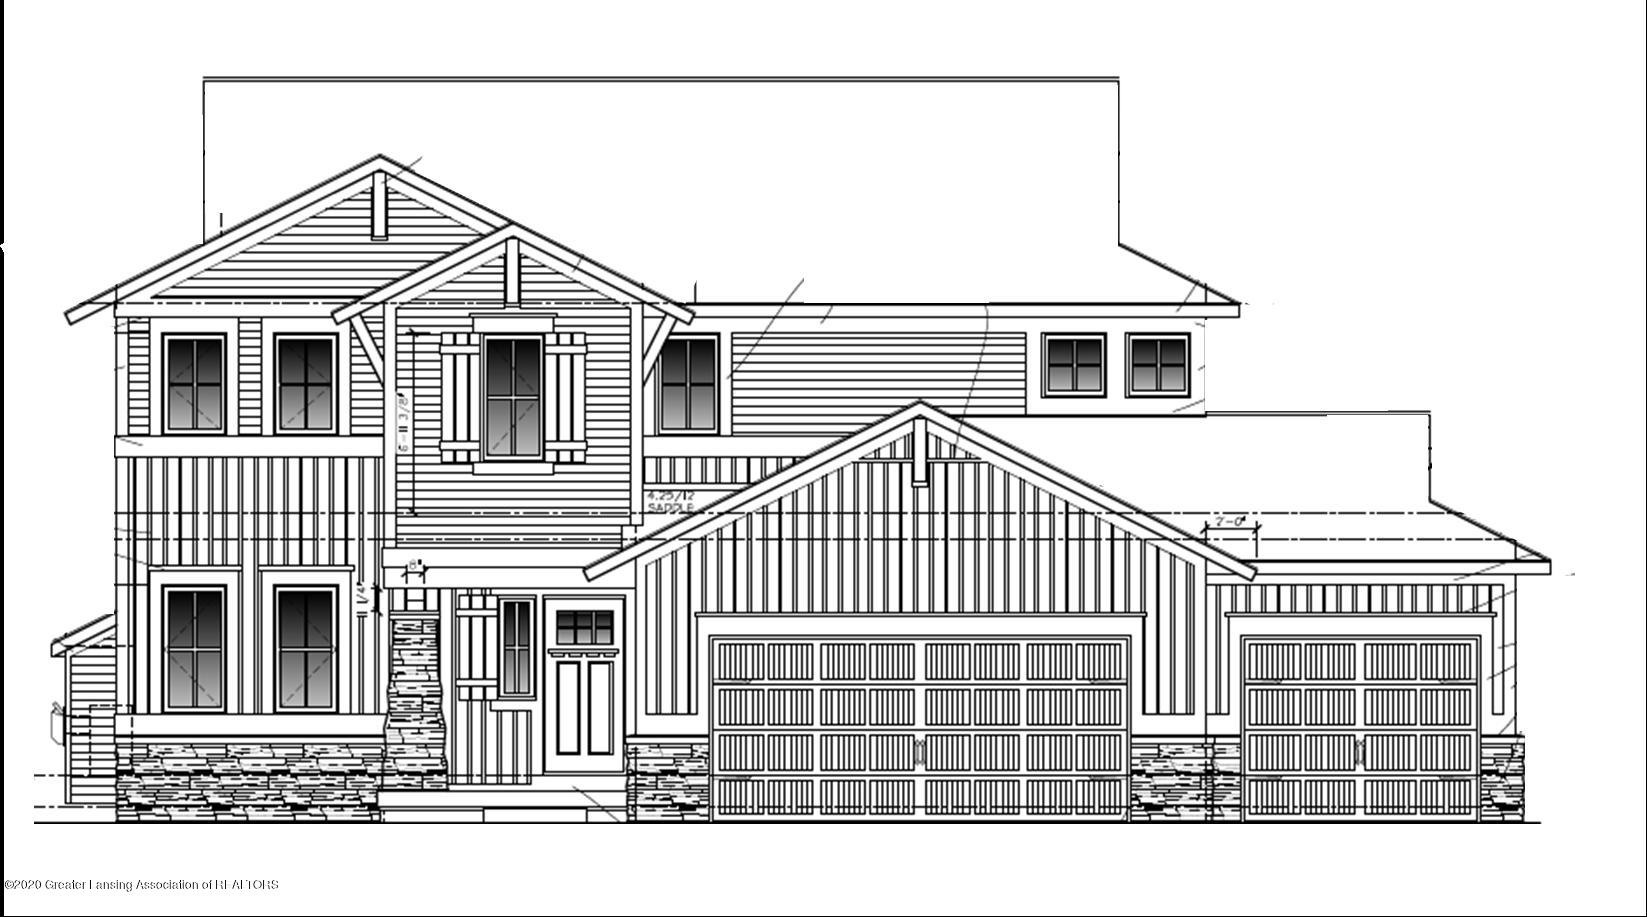 2983 Medinah Dr - 2983 Medinah #11 Blueprint Image - 1